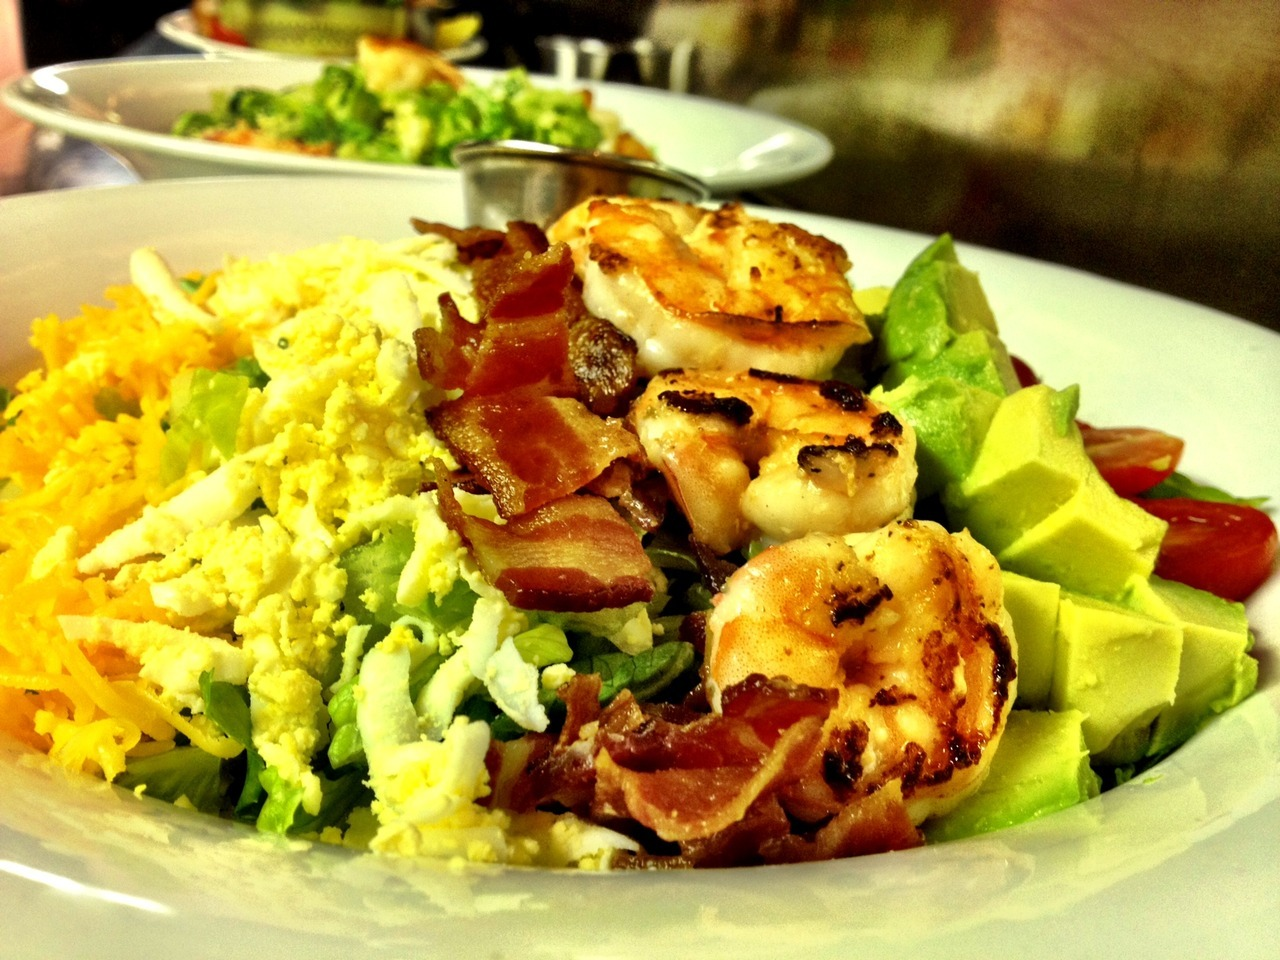 Monday Dish: our classic Cobb Salad with grilled shrimp. $18.50. Optional grilled chicken or try combo.